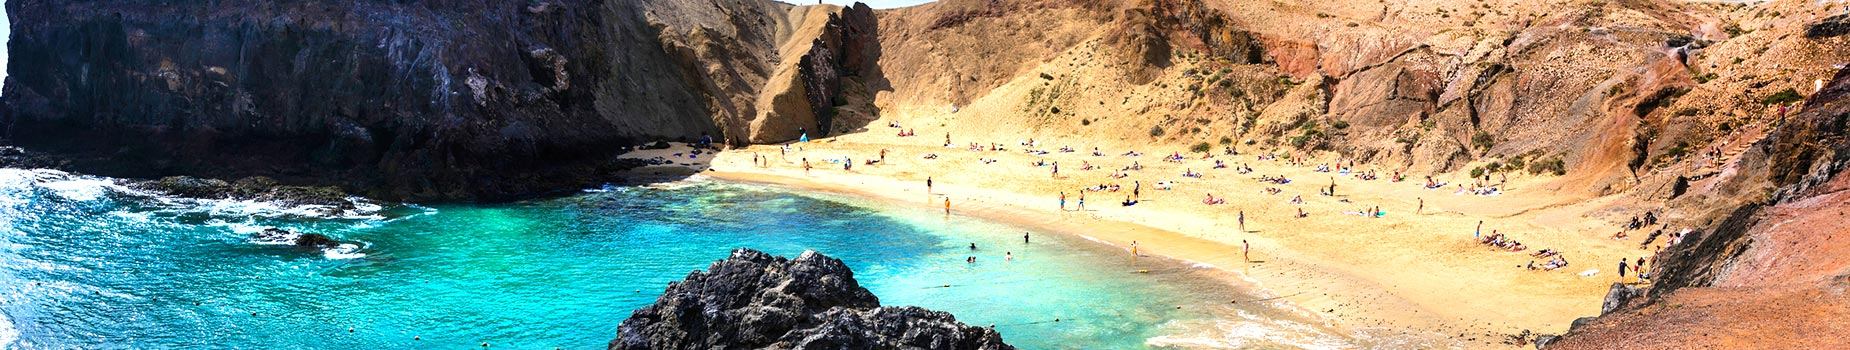 All Inclusive Lanzarote